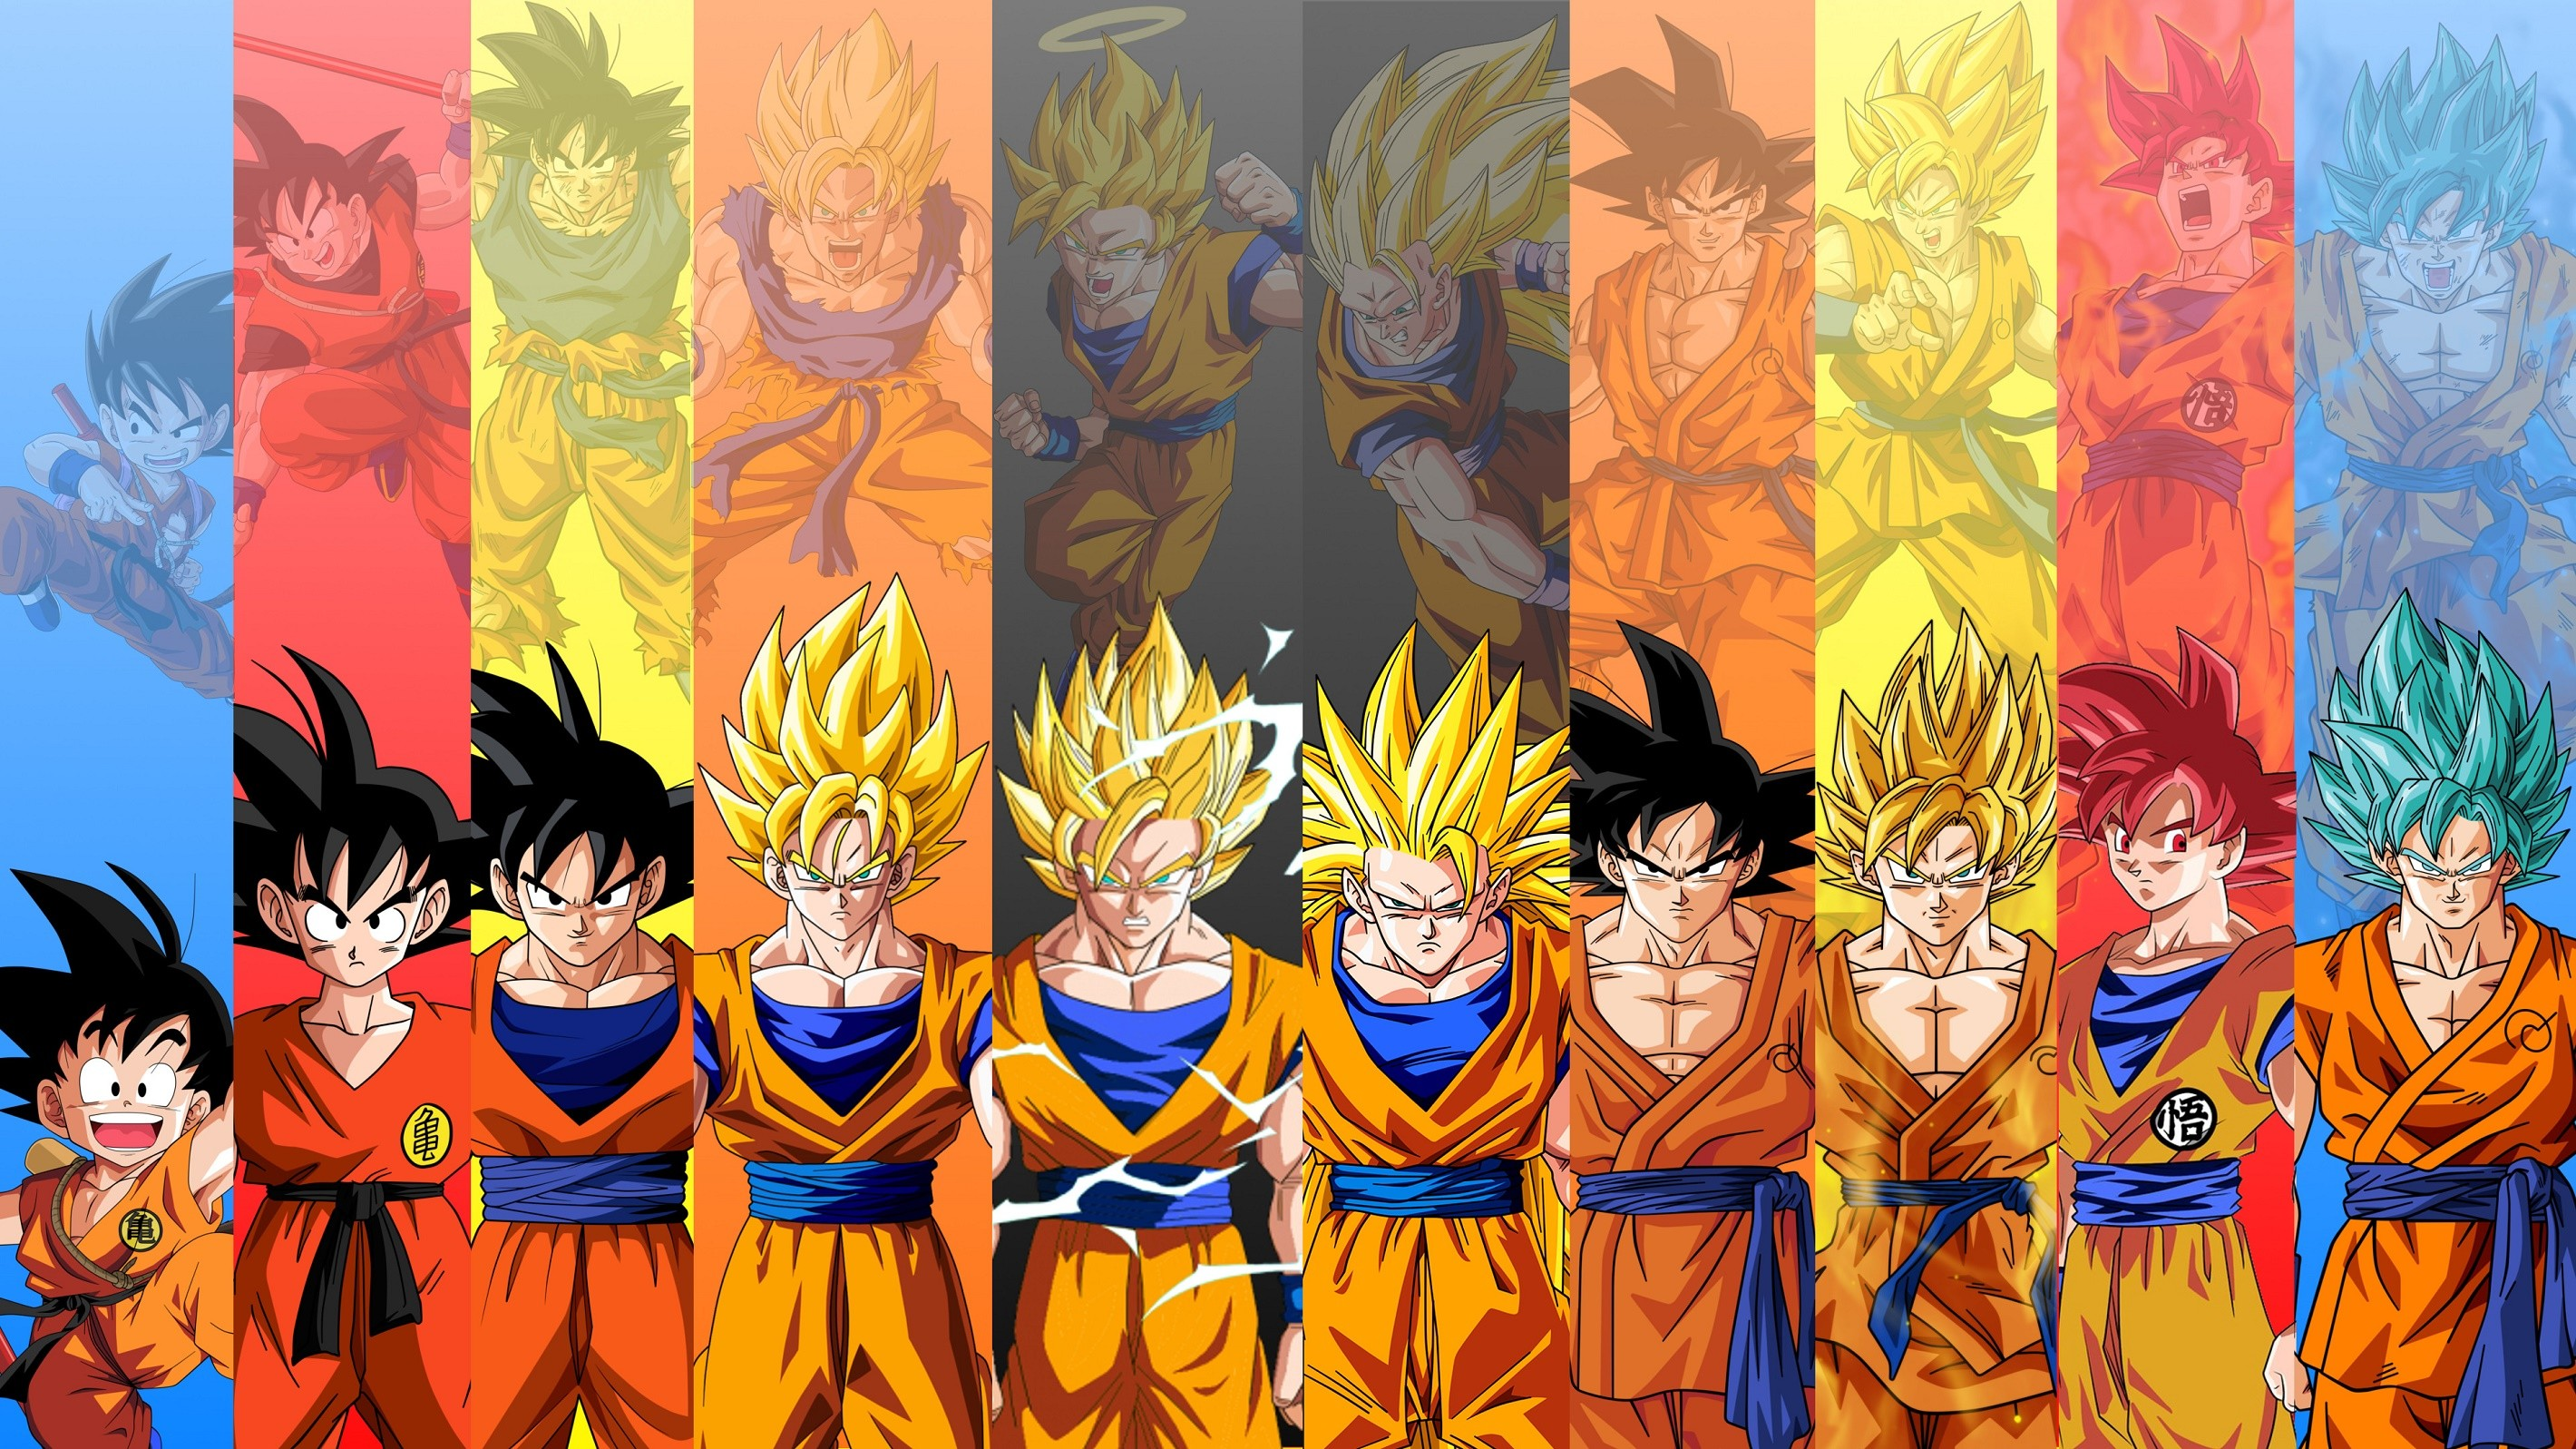 2840x1597 Anime Dragon Ball Super Goku Saiyan 3 Wallpaper